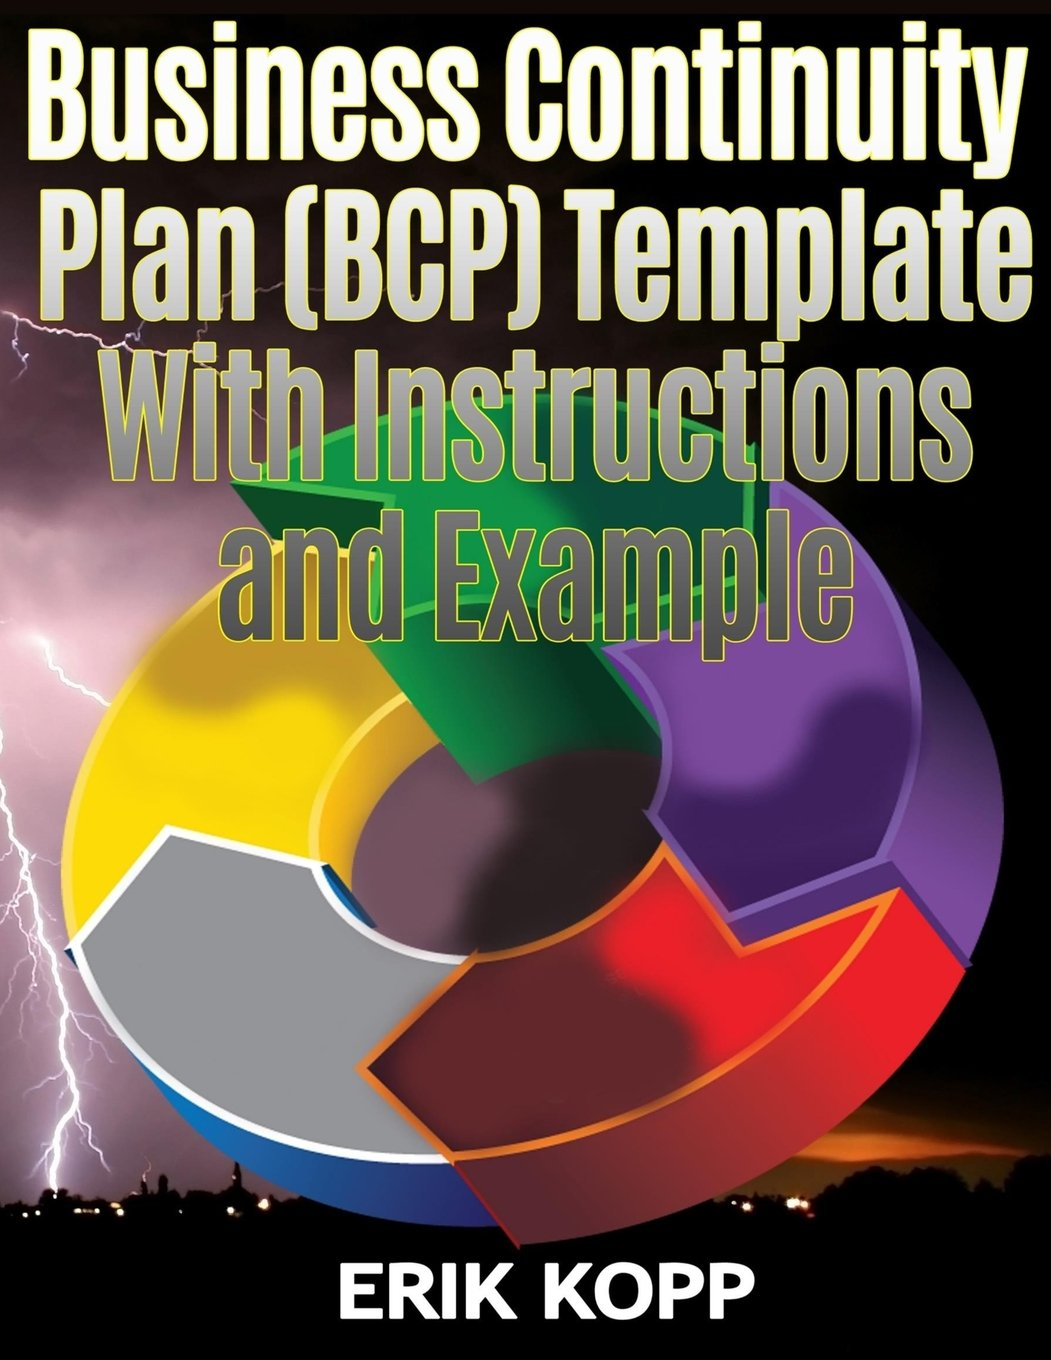 Business Continuity Plan (BCP) Template With Instructions And Example: Erik  Kopp: 9781466328792: Amazon.com: Books  Business Continuity Plan Template Free Download